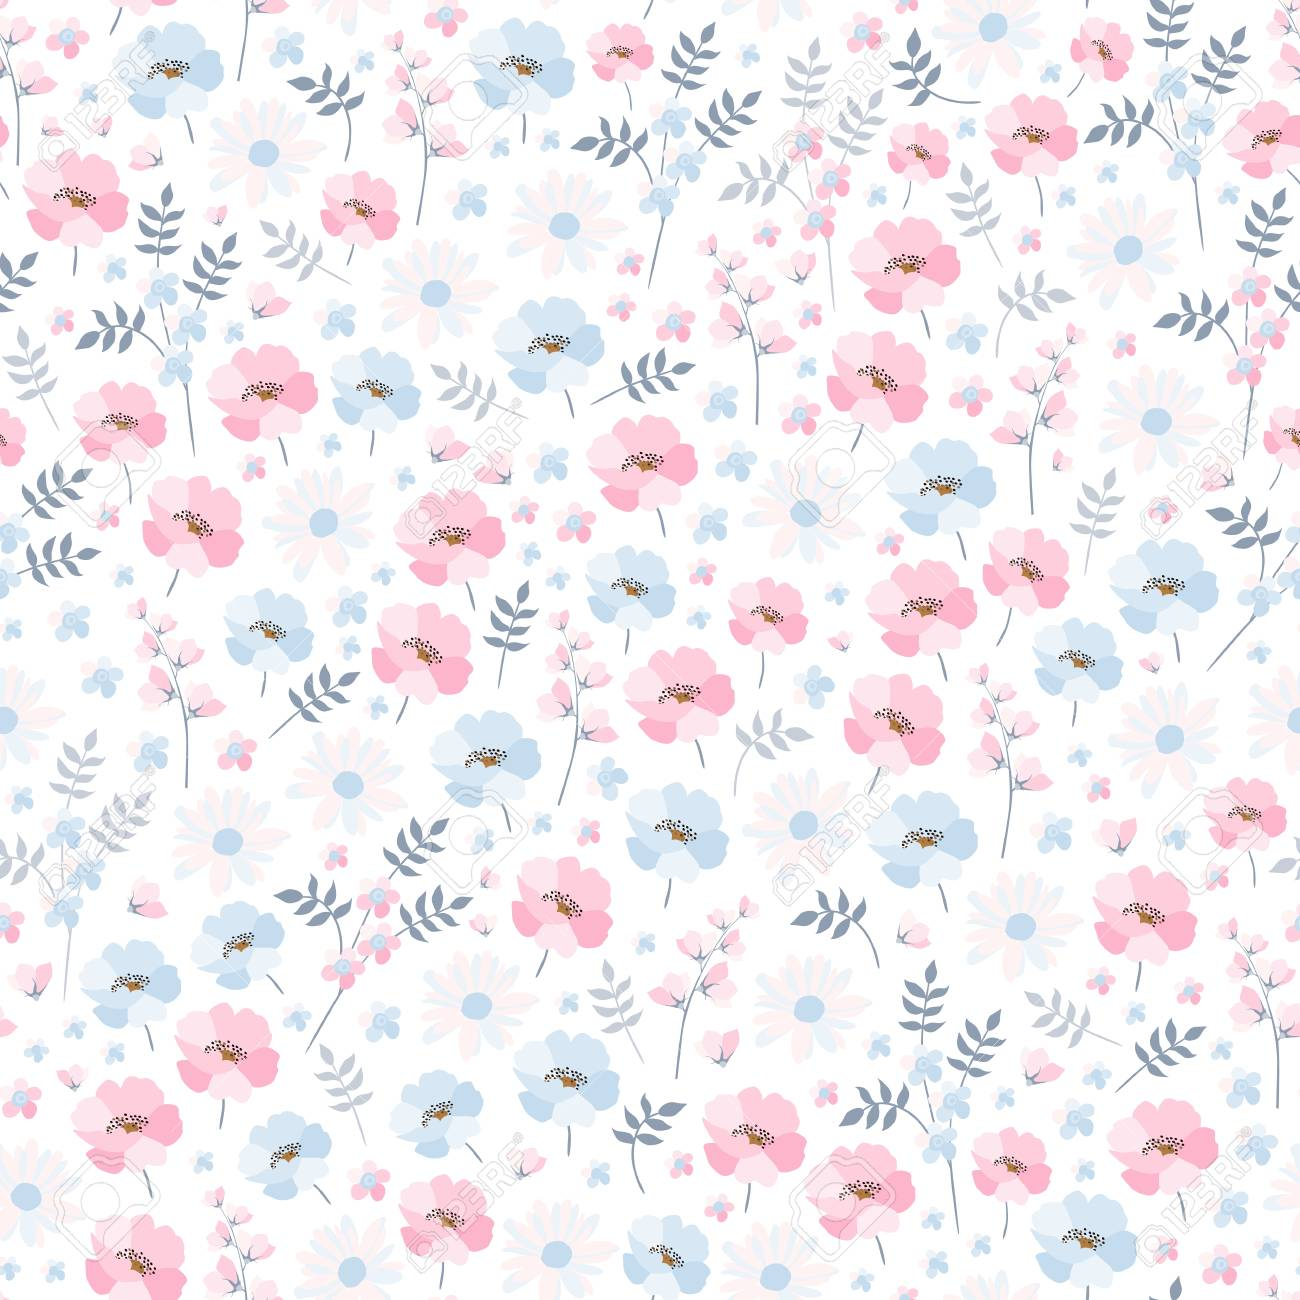 Tender Ditsy Floral Pattern Seamless Vector Design With Light